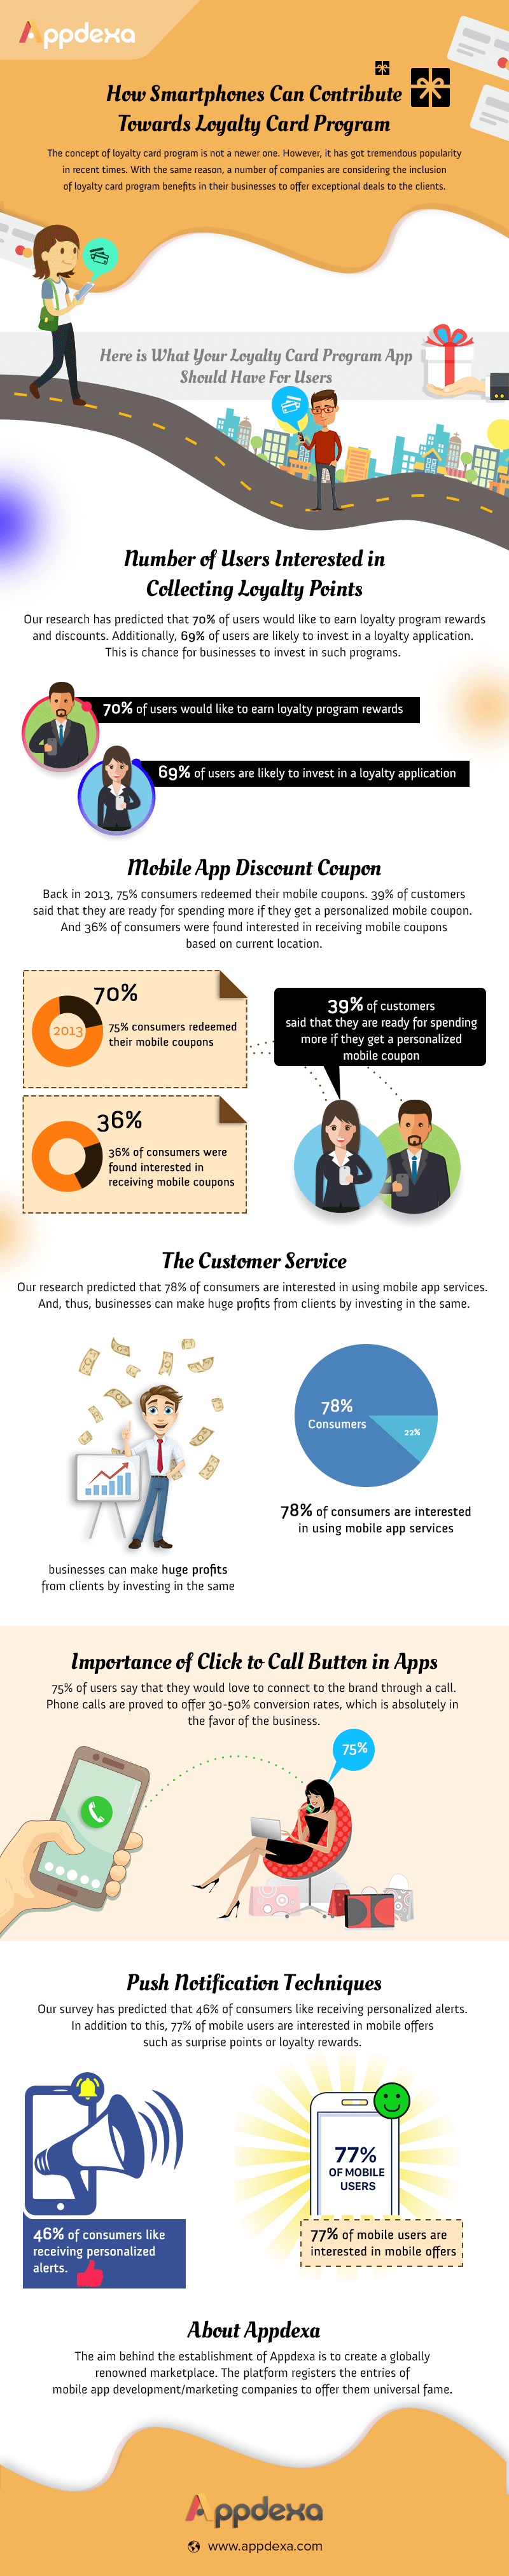 Here's How Business Can Up Their Loyalty Card Program Game - Infographic